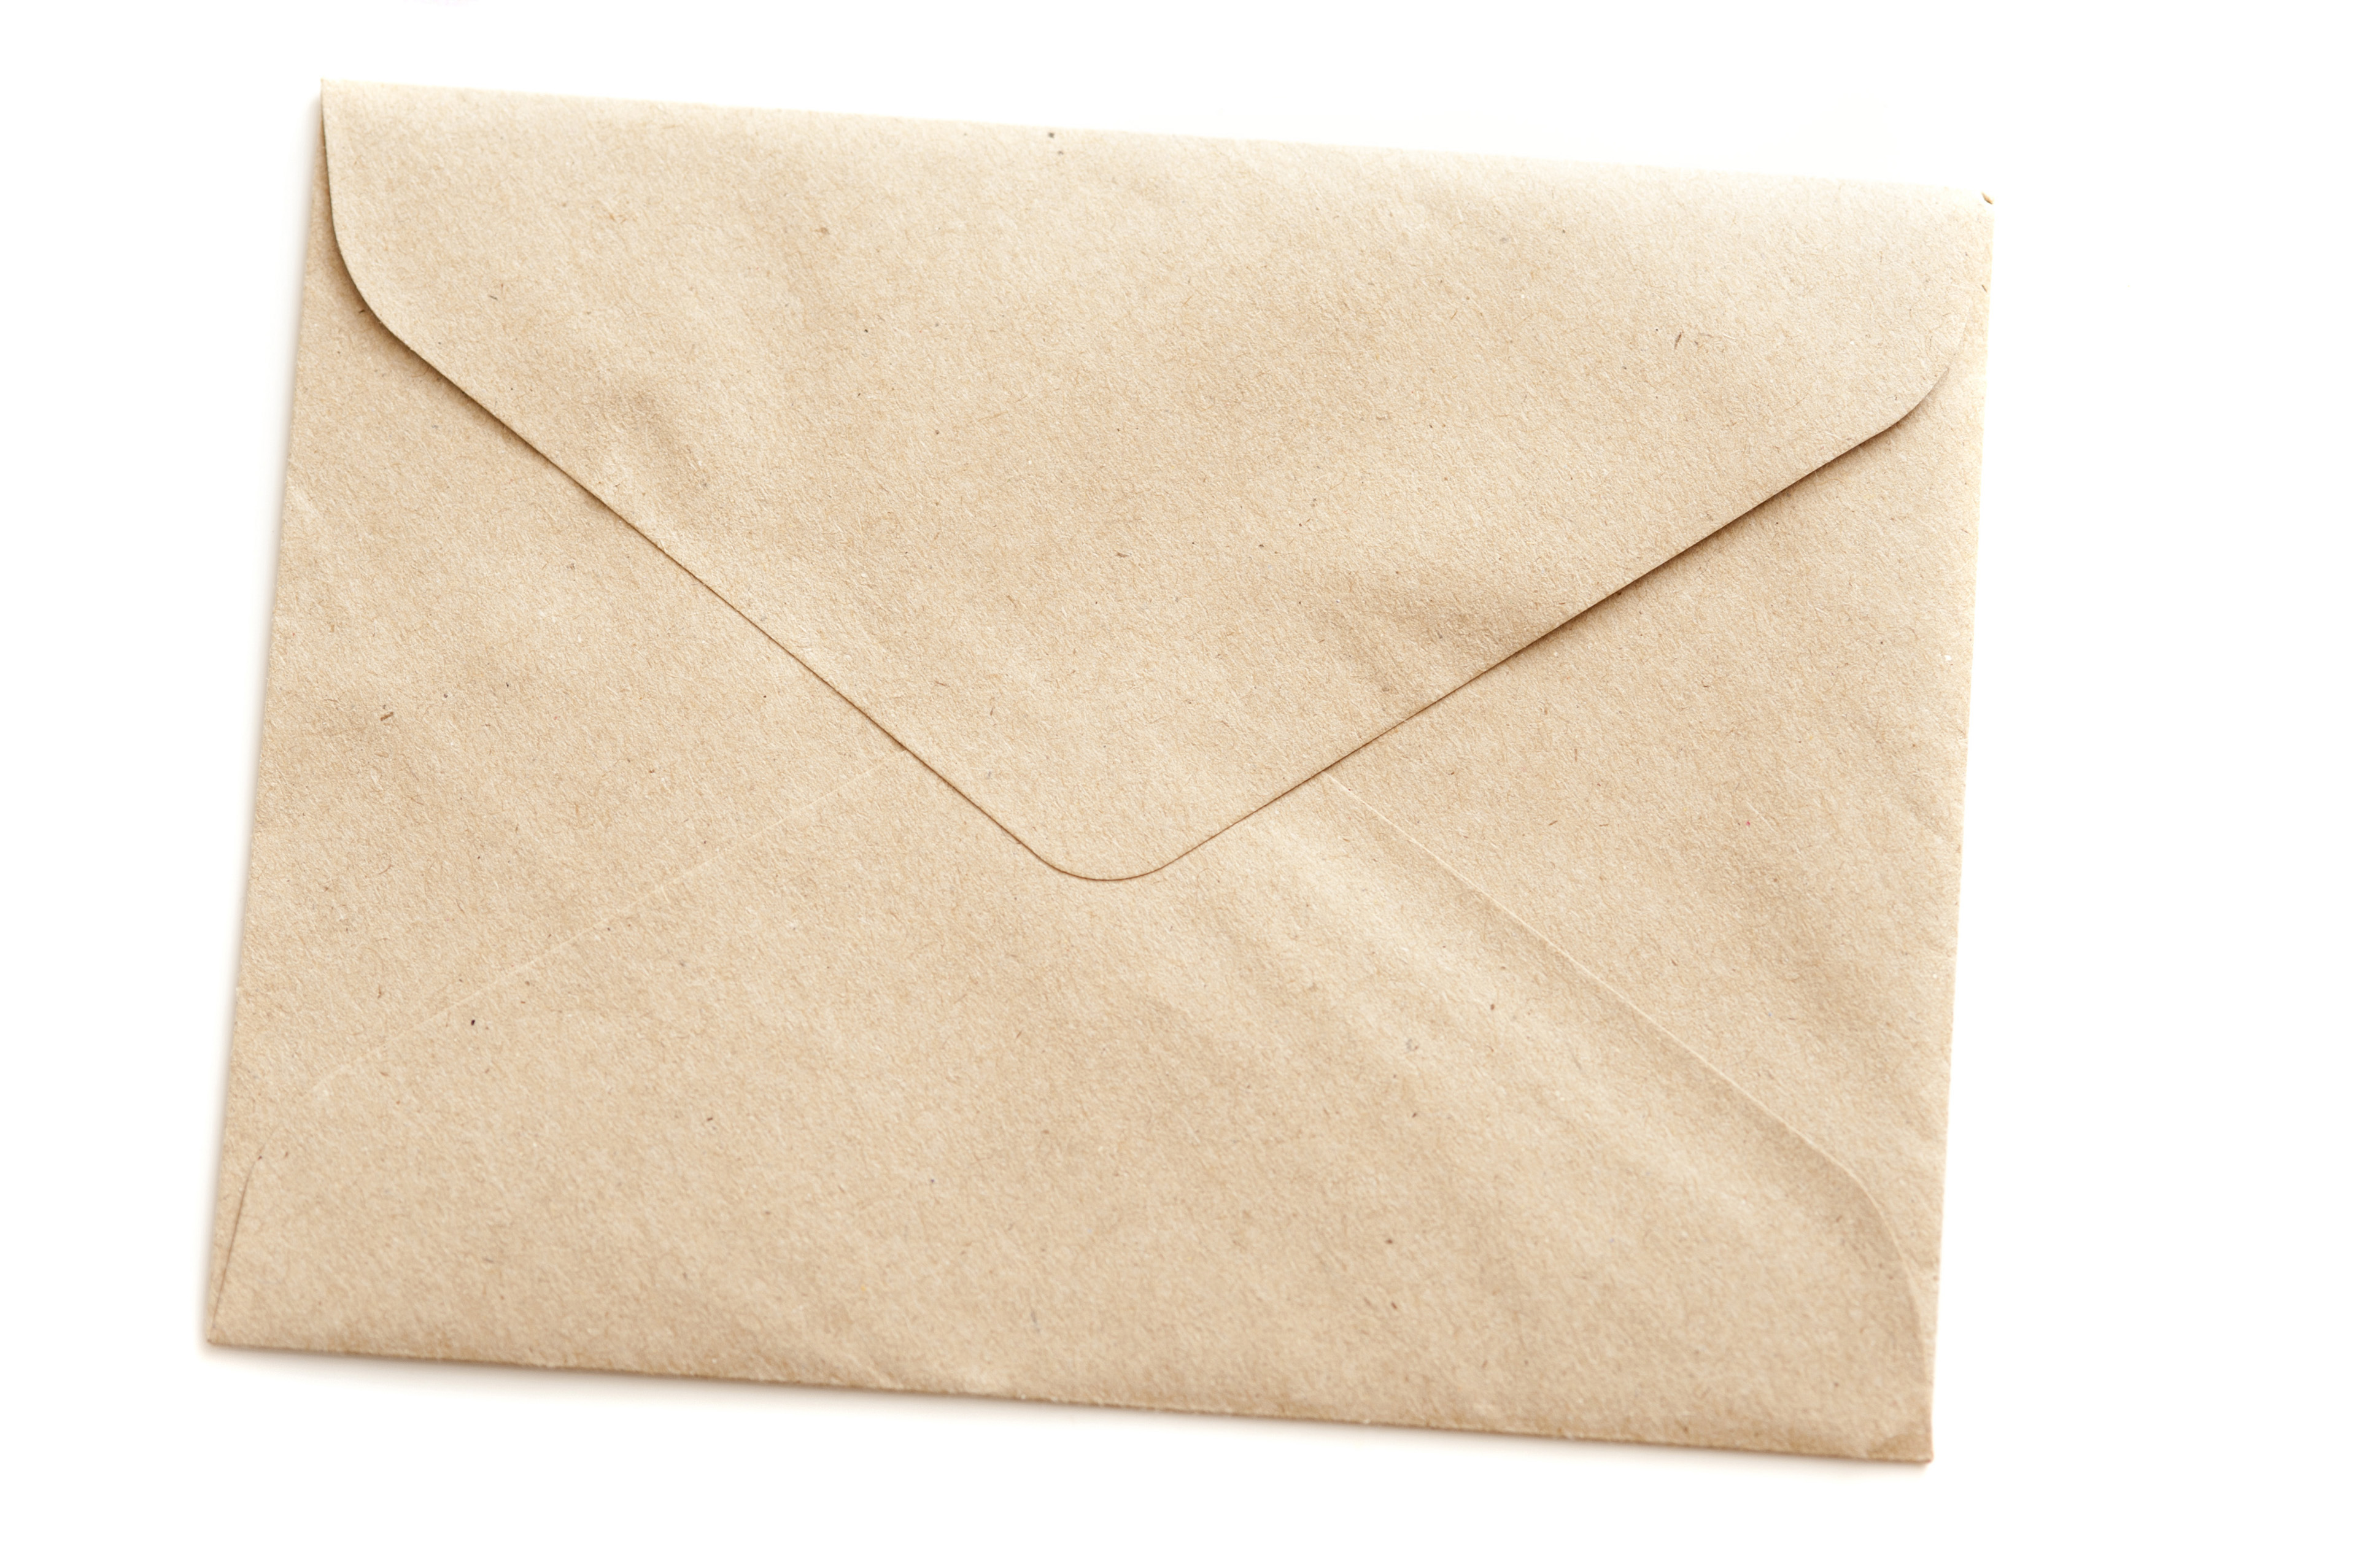 Close up Closed Brown Envelope for Documents Isolated on a White Background